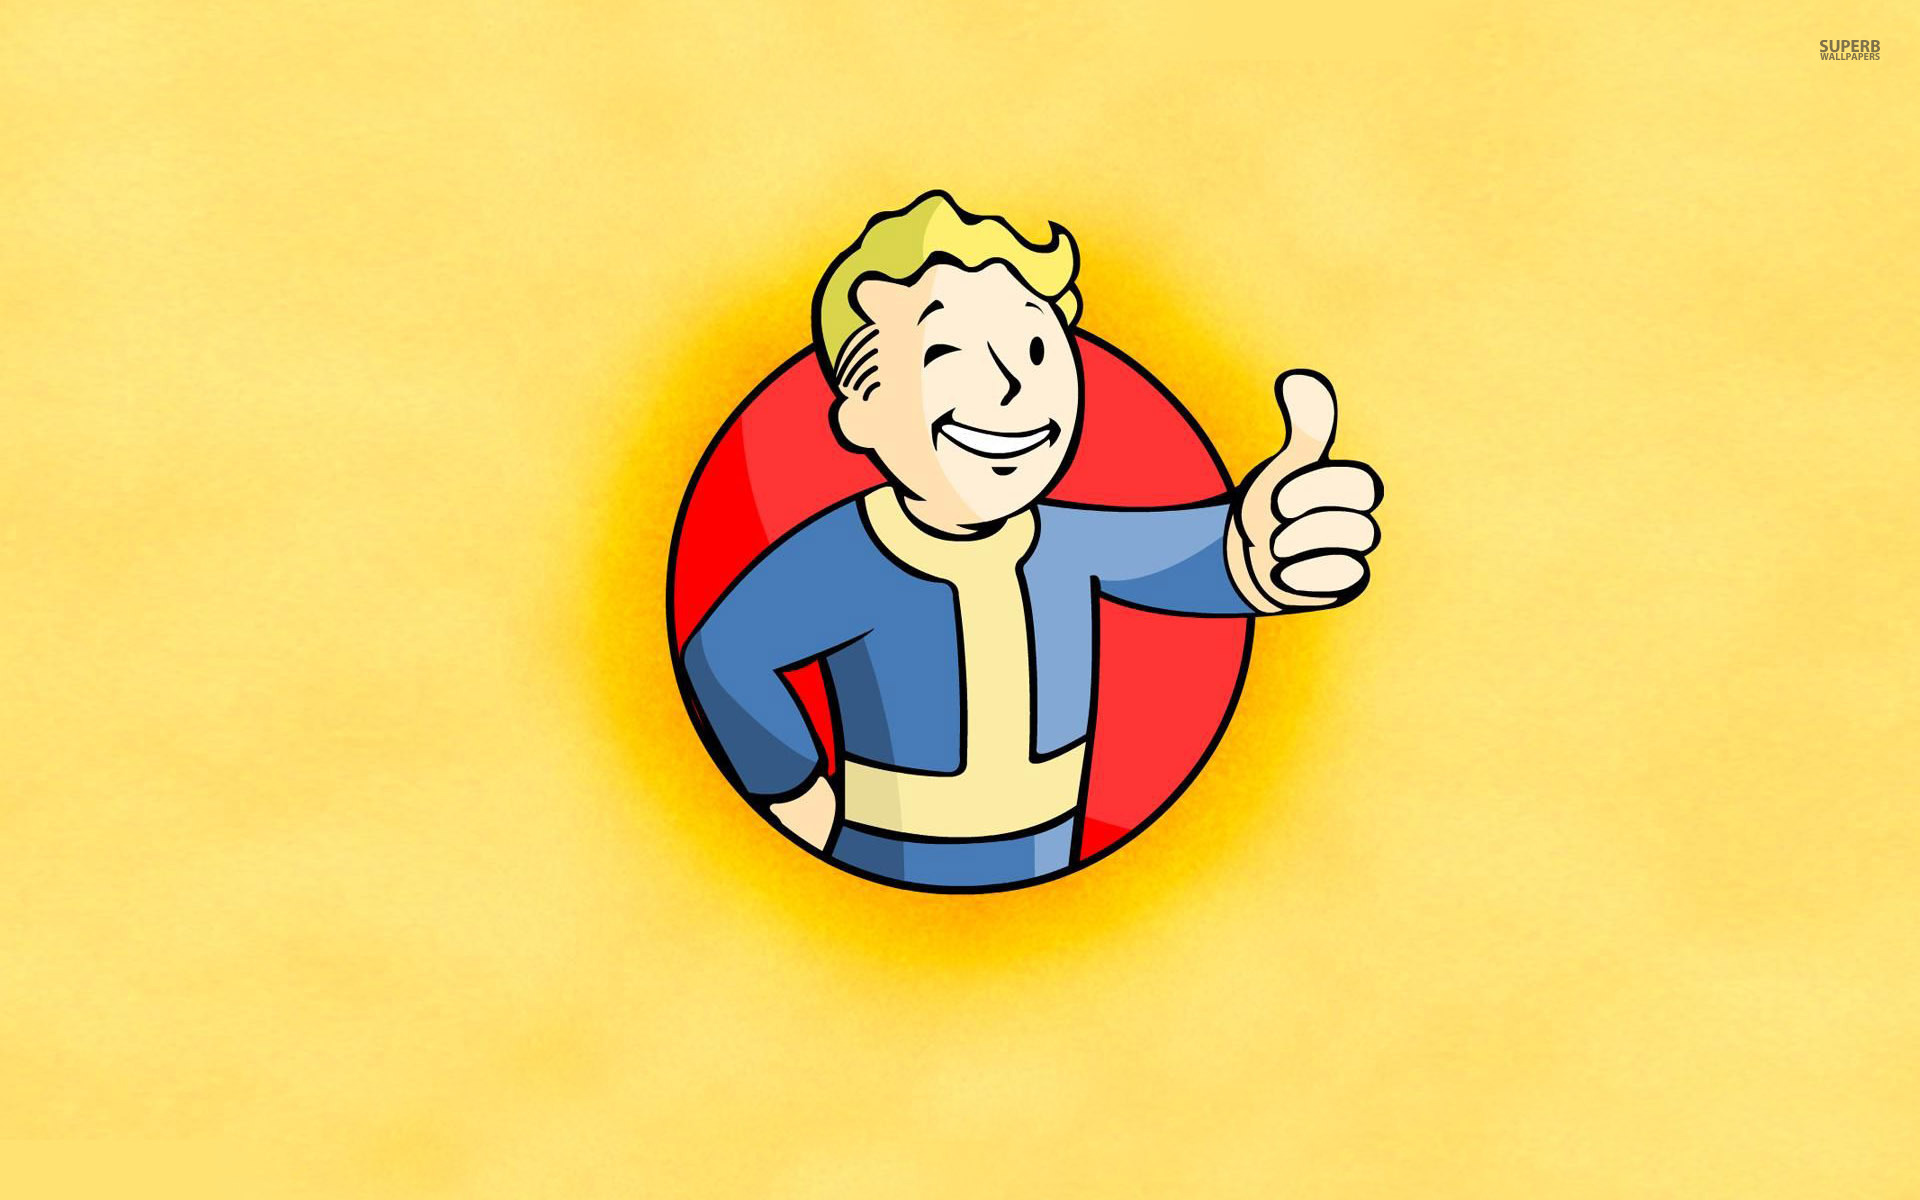 Free Download Vault Boy Fallout 27630 1920x1200 1920x1200 For